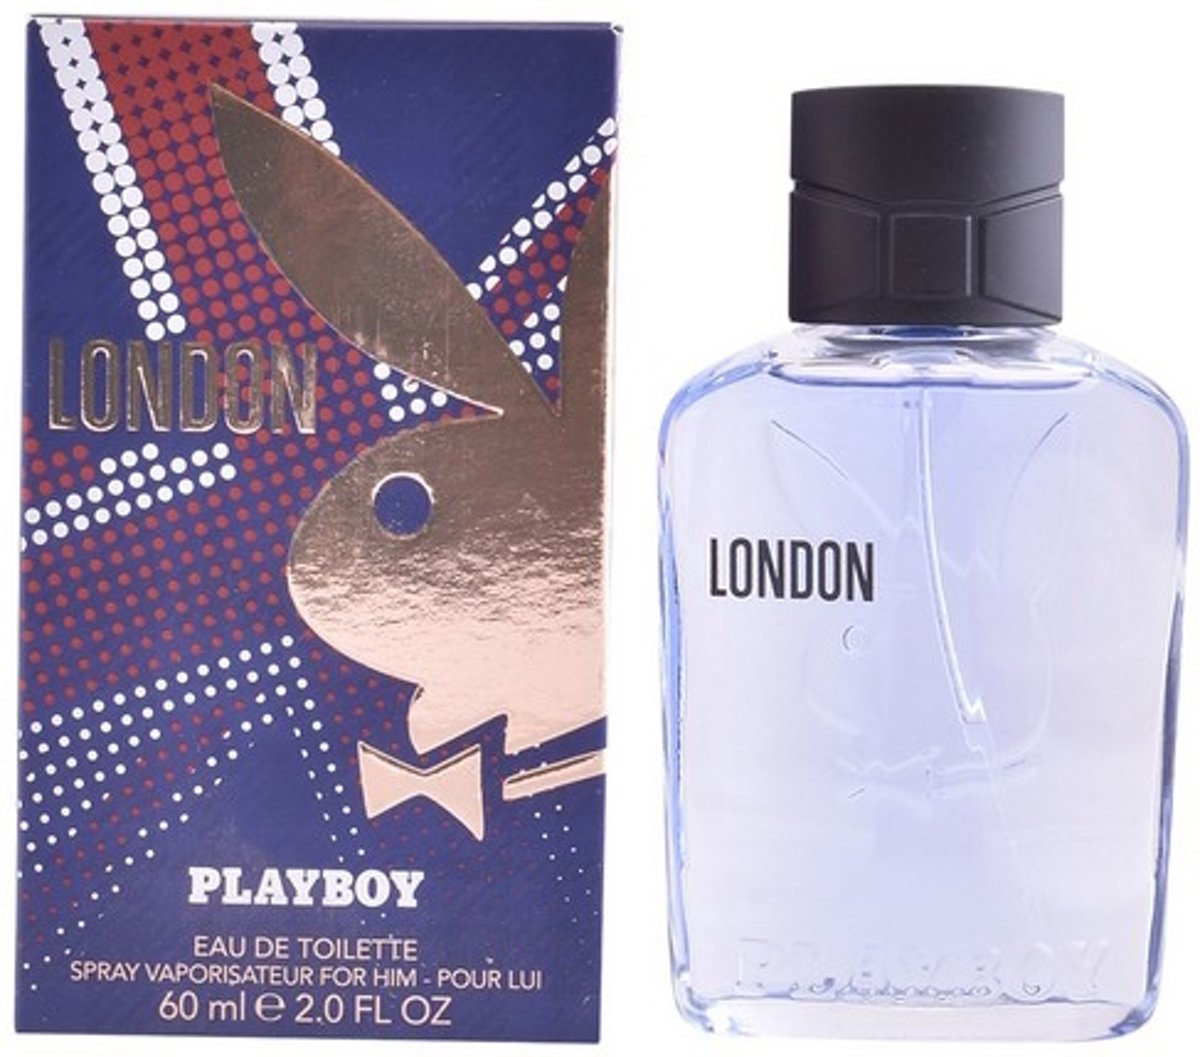 Playboy London Man 60 ml - Eau de Toilette